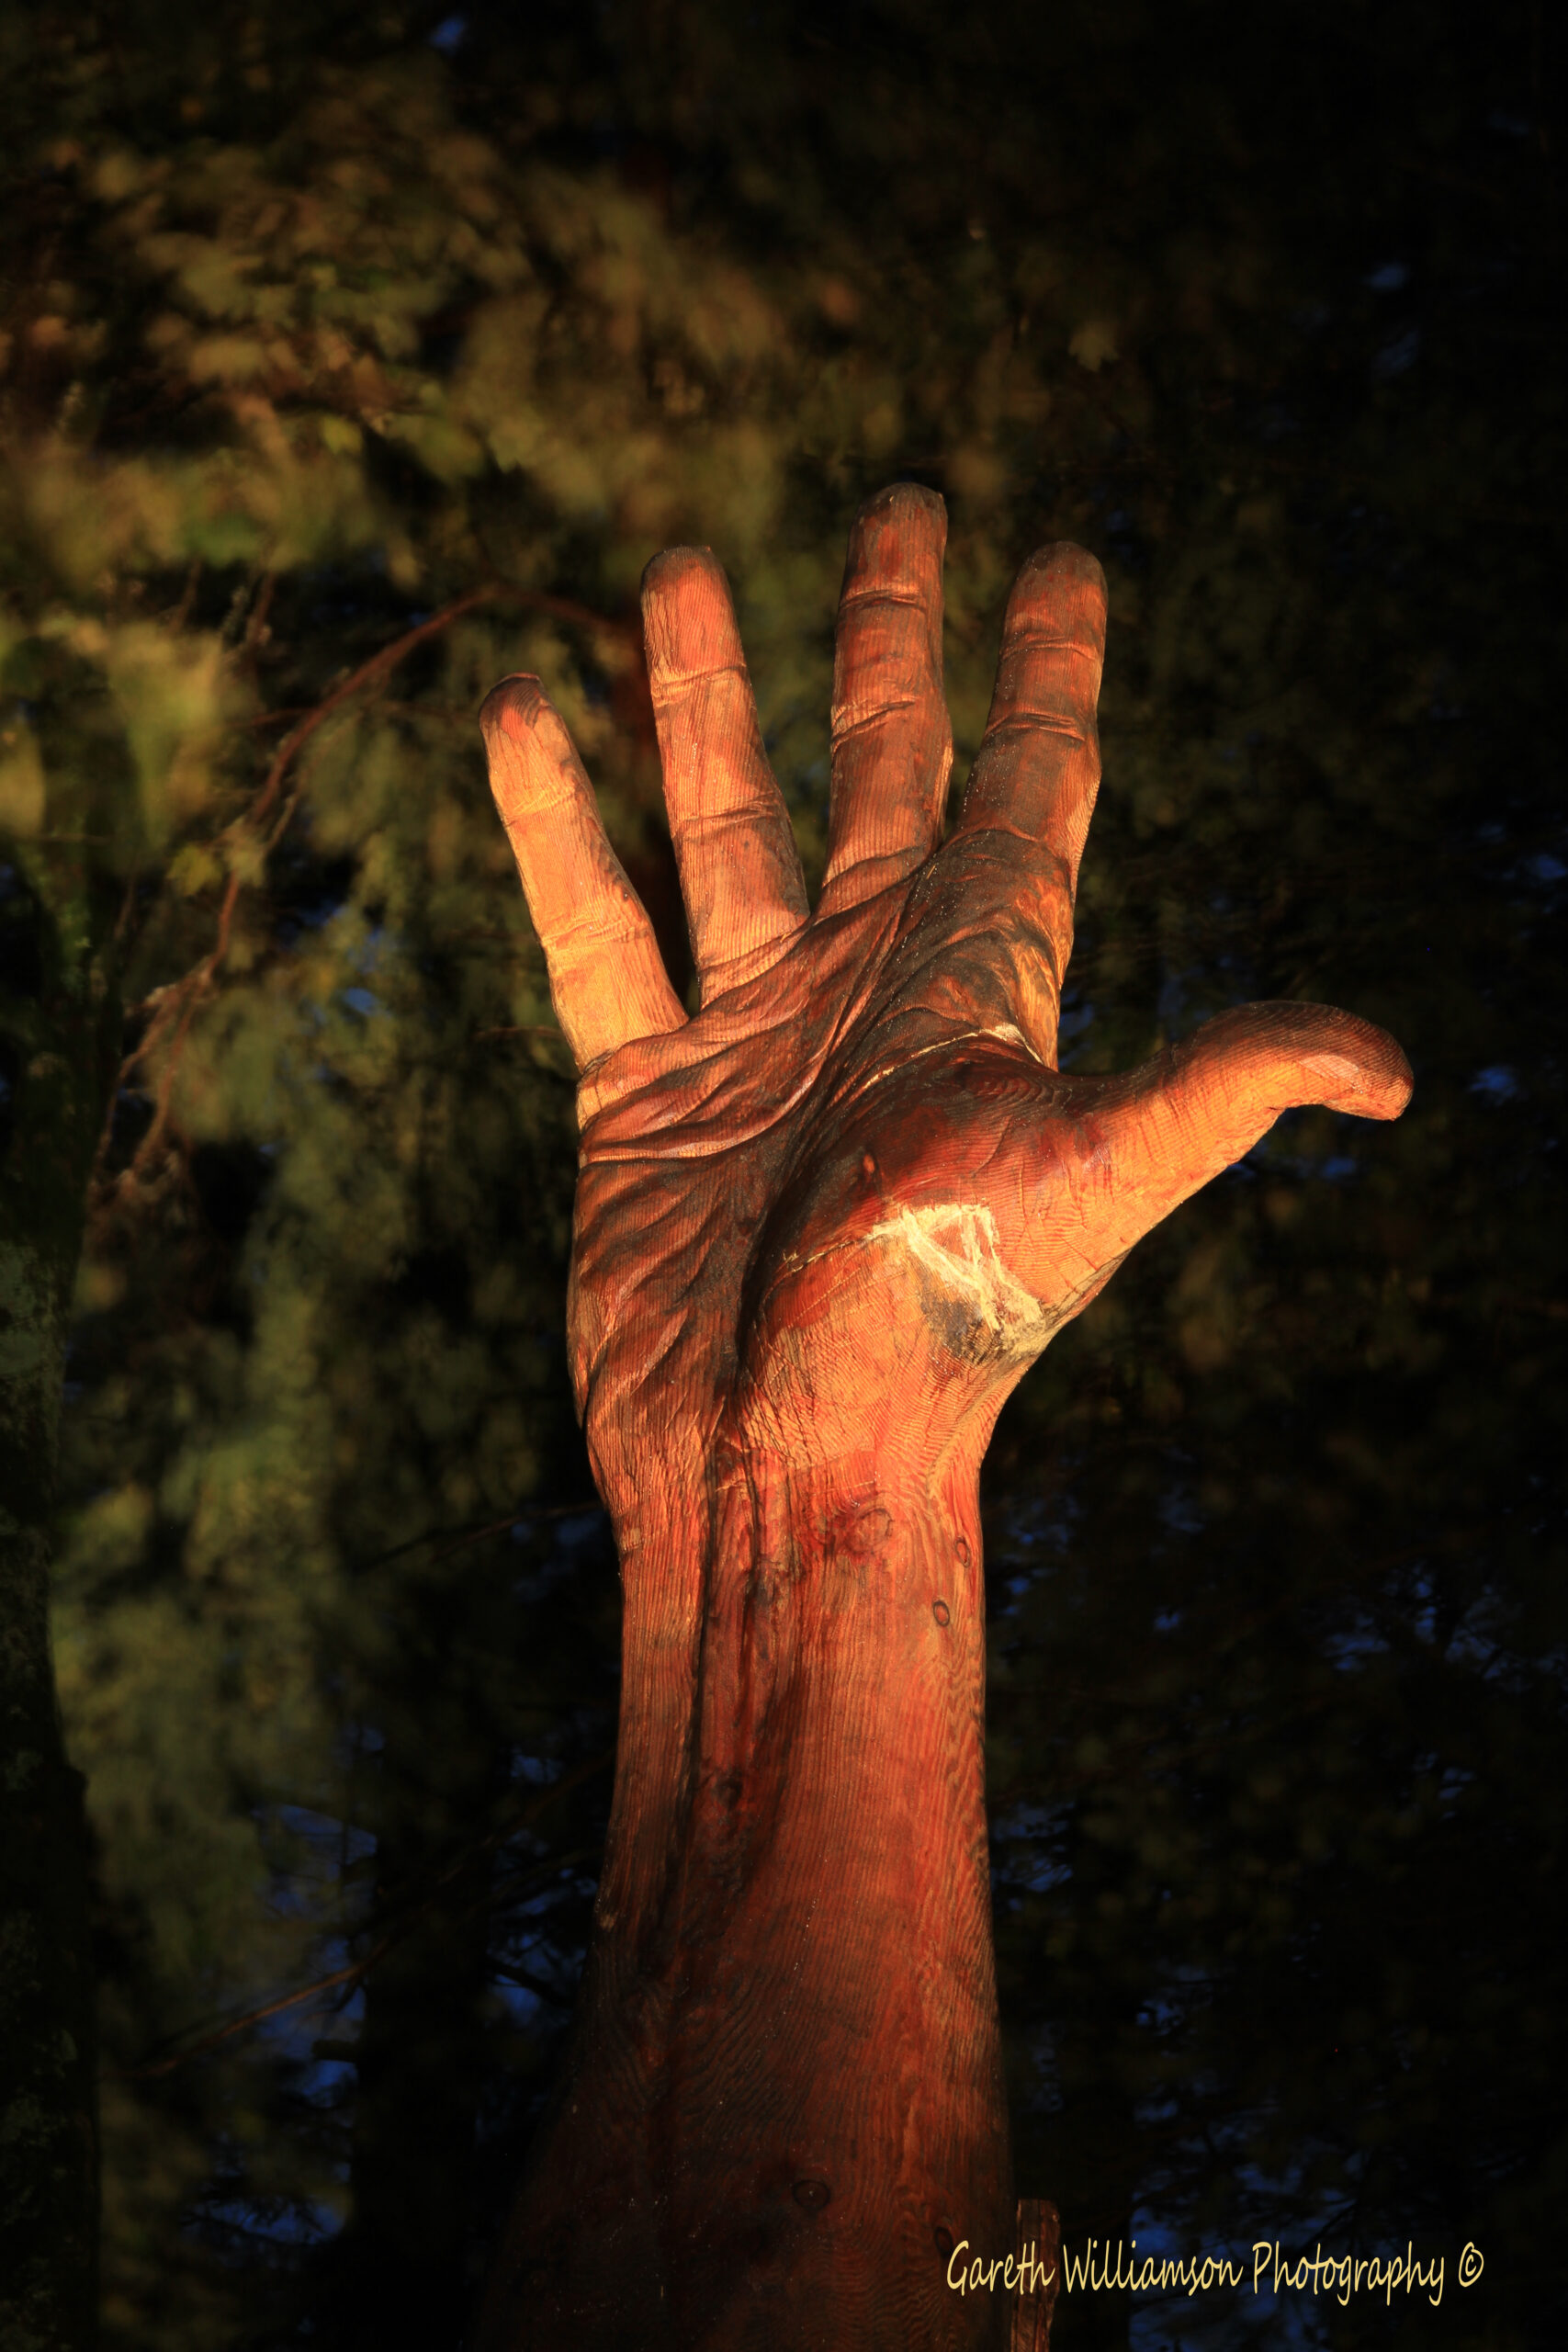 the giant hand of vrynwy by simon o'rourke. Photograph is taken at night and shows an illuminated 50ft hand sculpture surrounded by woodland